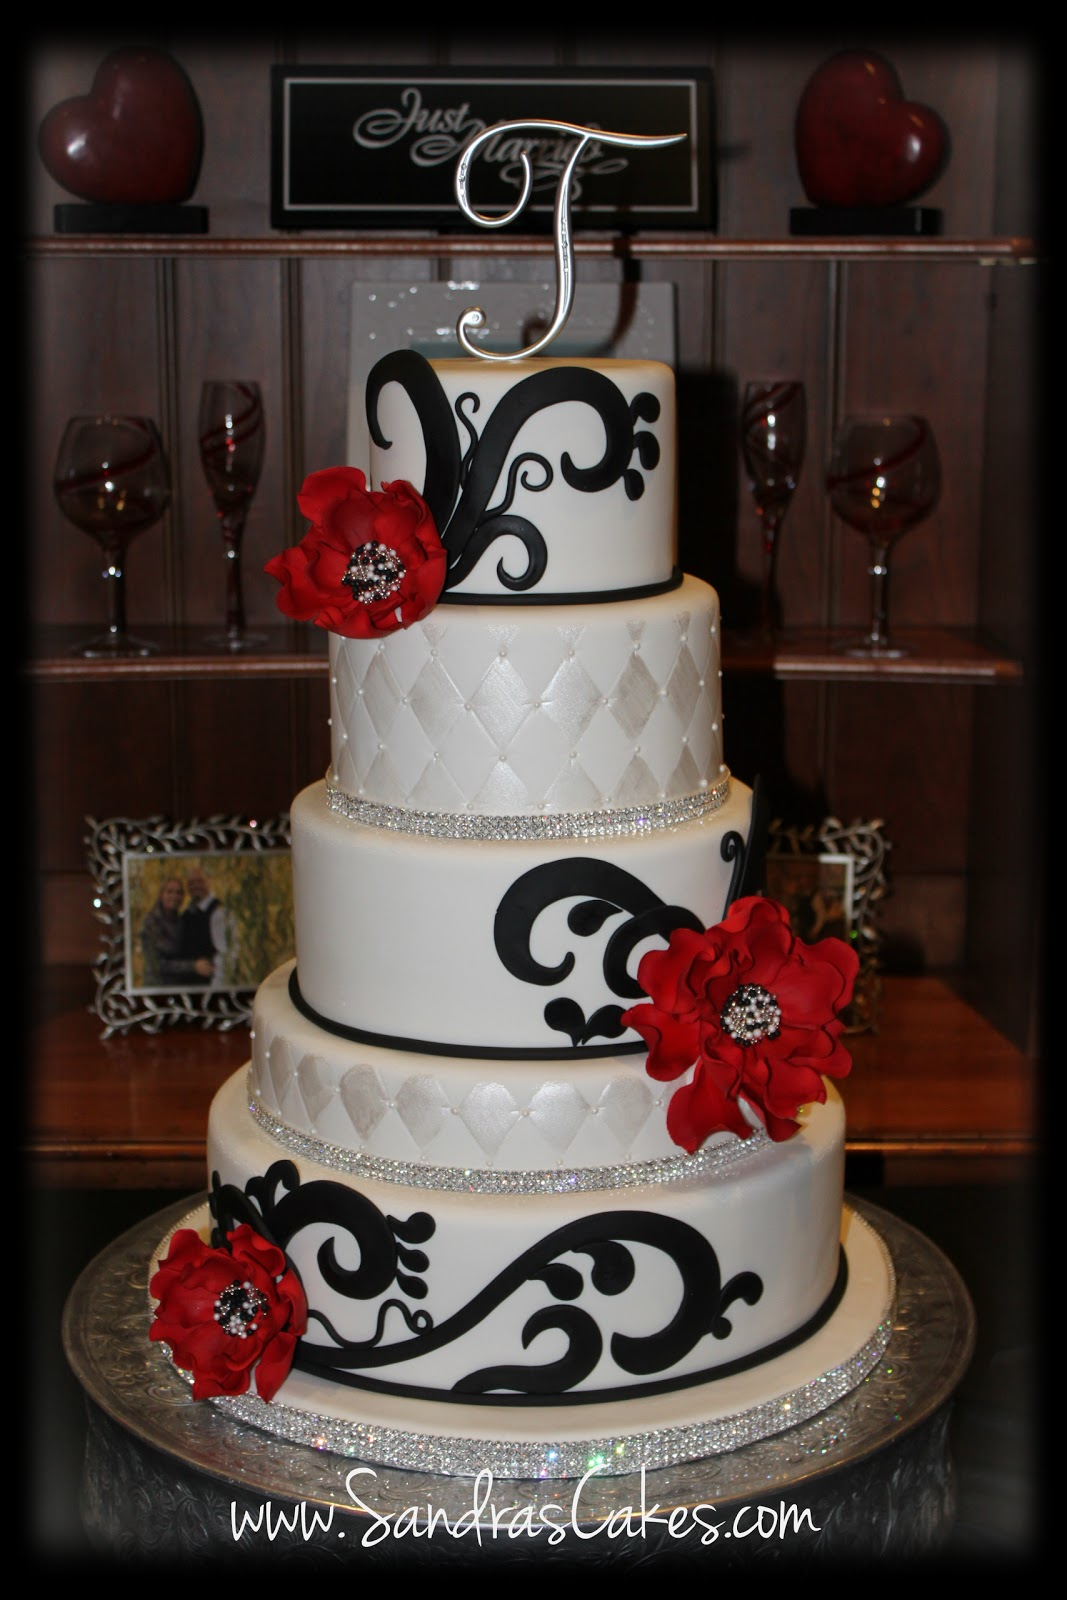 Red  Black and White Wedding Cake Here is a truly beautiful cake we made a couple of weeks ago  I was very  pleased with it and so was the bride  Wedding at the Moorings Club in Vero  Beach